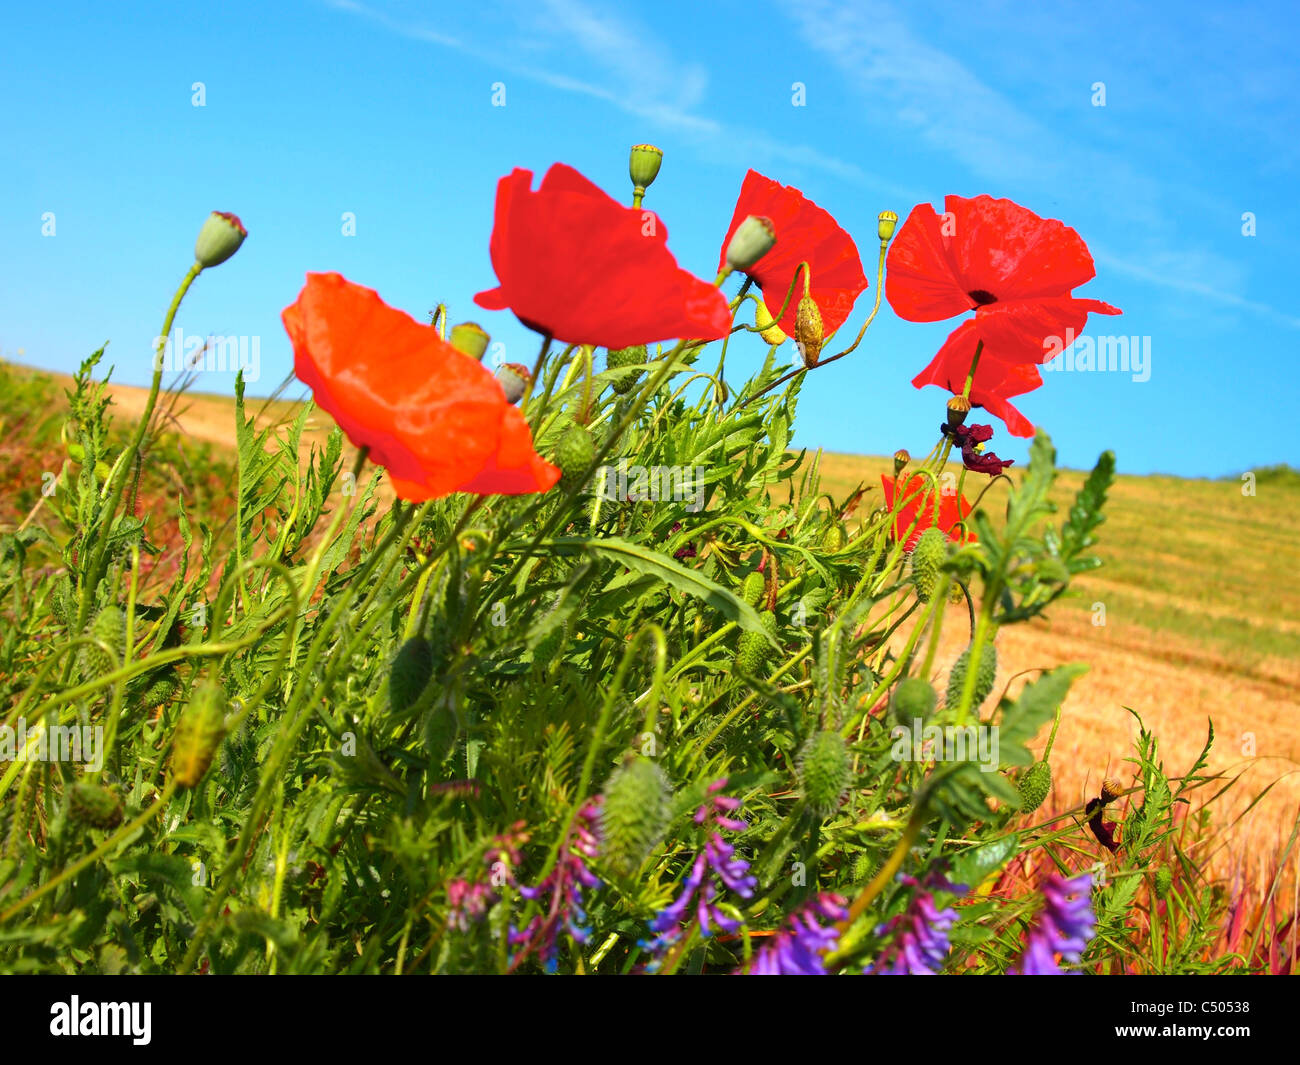 Field of poppies, france - Stock Image